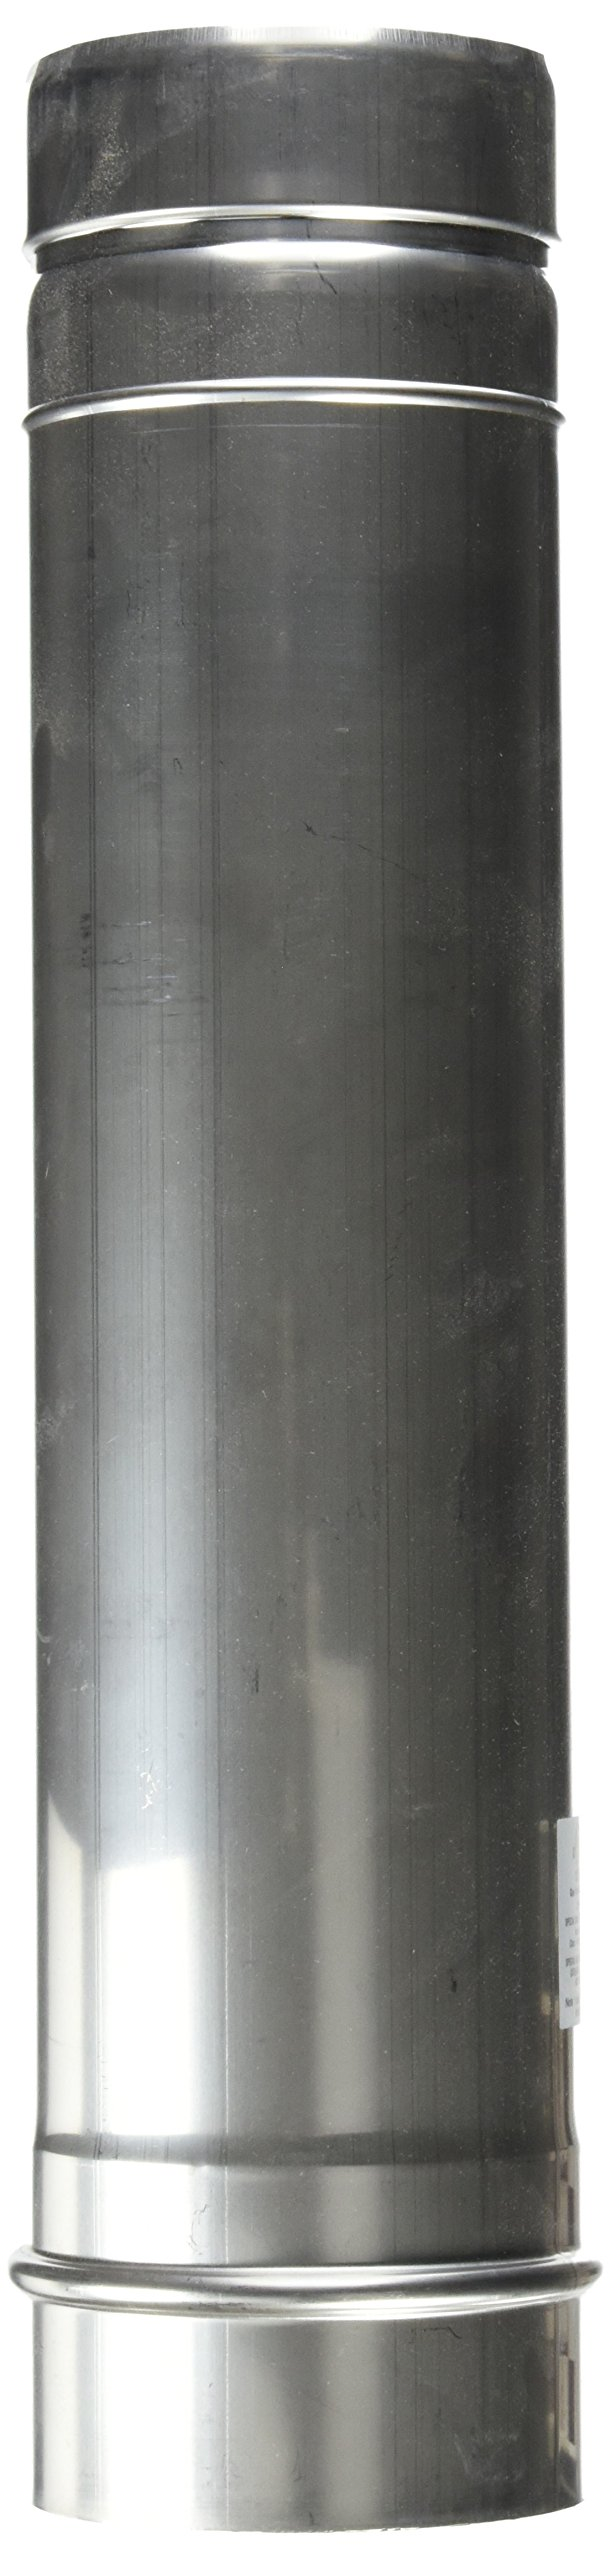 Noritz VP3-12STRAIGHT 3-Inch Diameter by 12-Inch Straight Stainless Steel Single Wall Venting